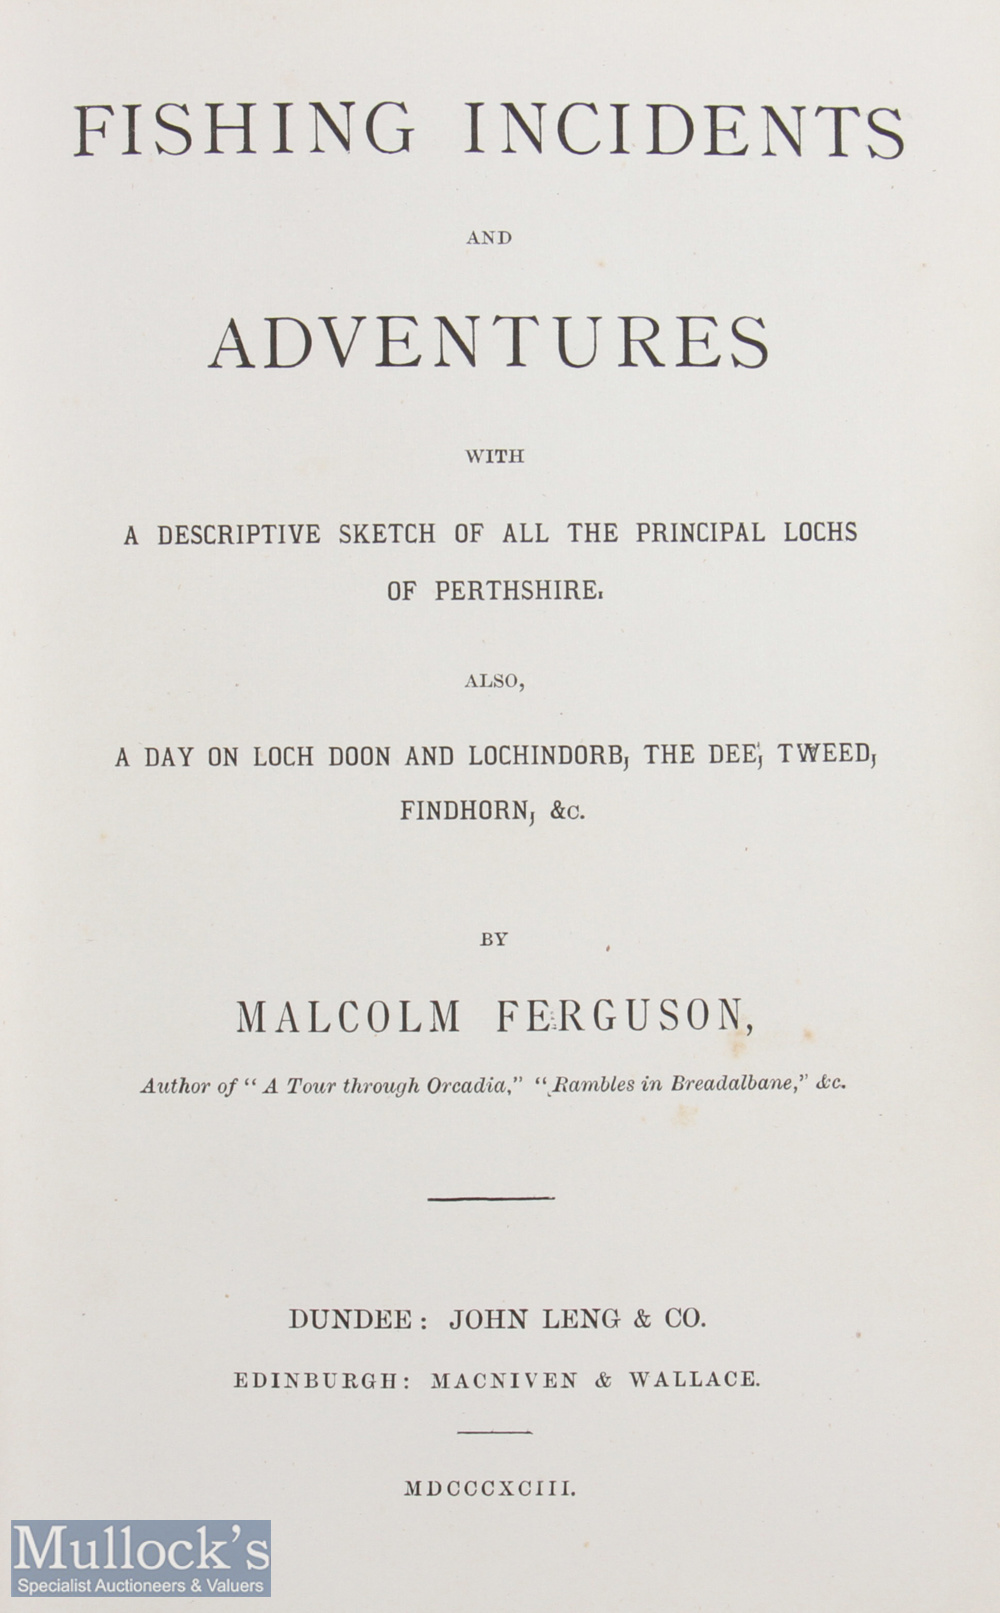 """Ferguson, Malcolm – """"Fishing Incidents and Adventures"""" 1893 1st edition, published by John Leng & - Image 2 of 2"""